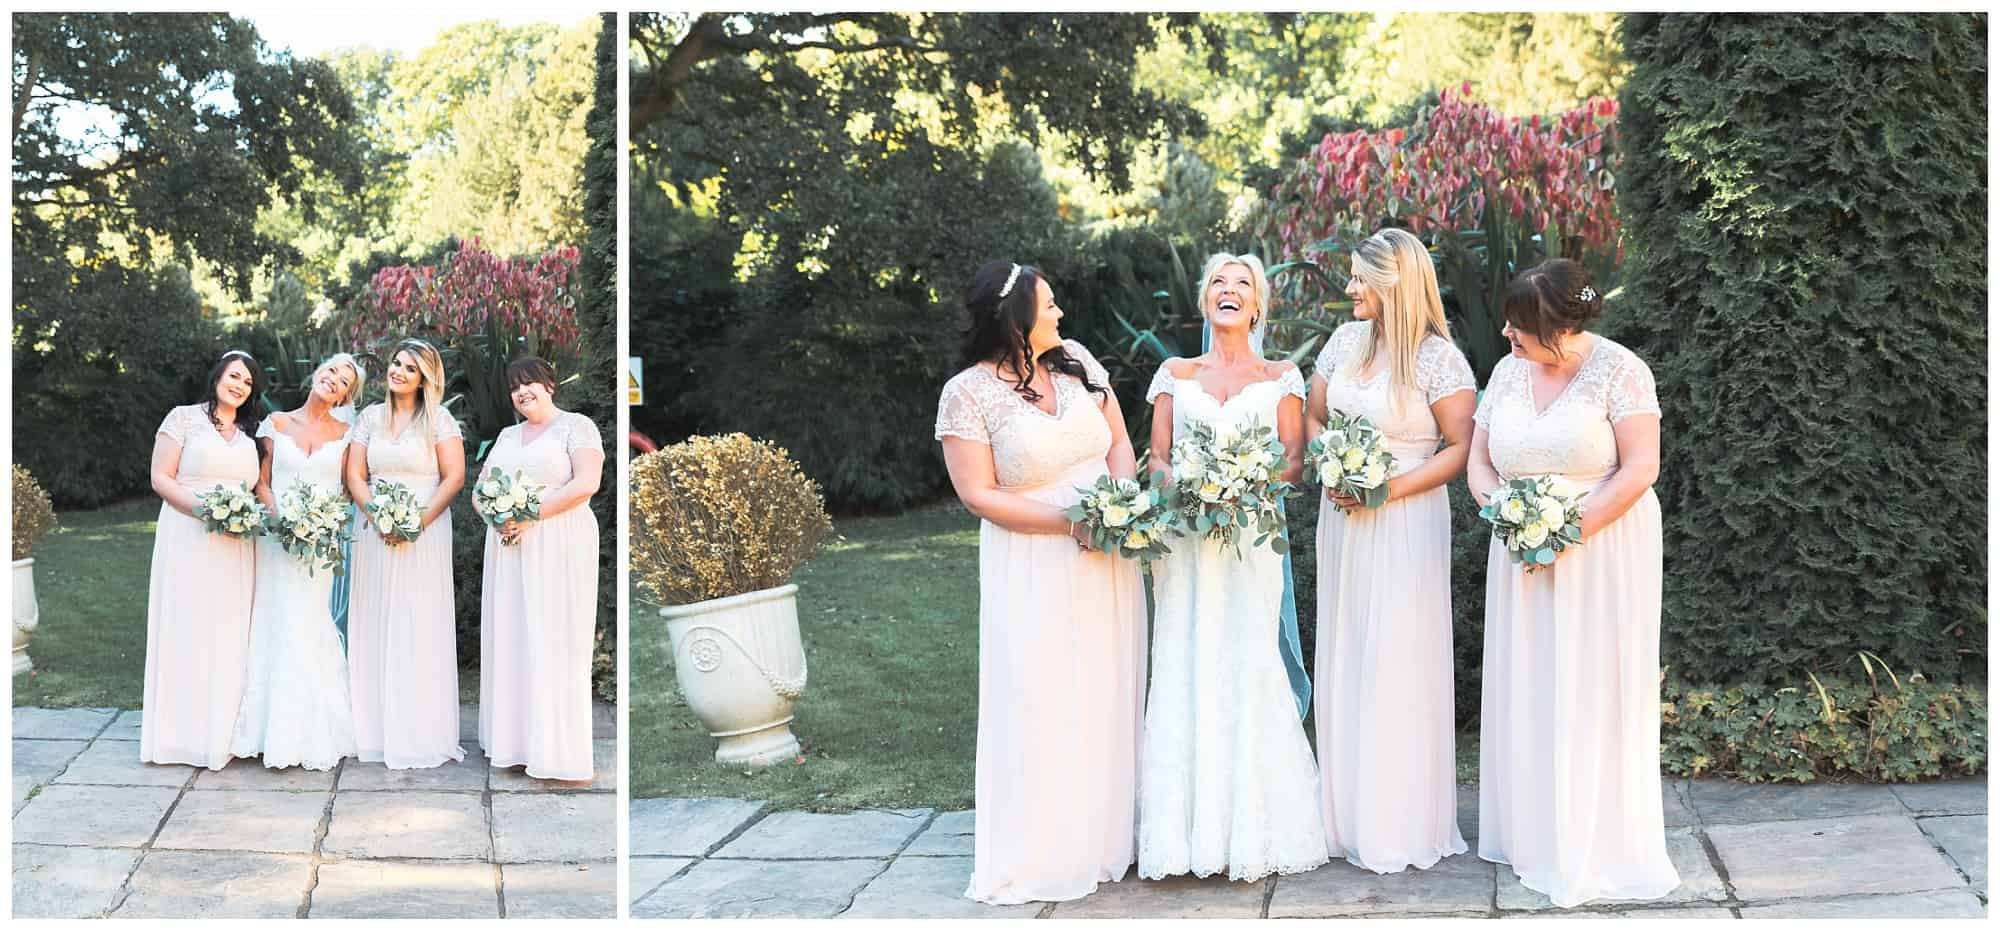 Whitley Hall Hotel Wedding -  bride with bridesmaids